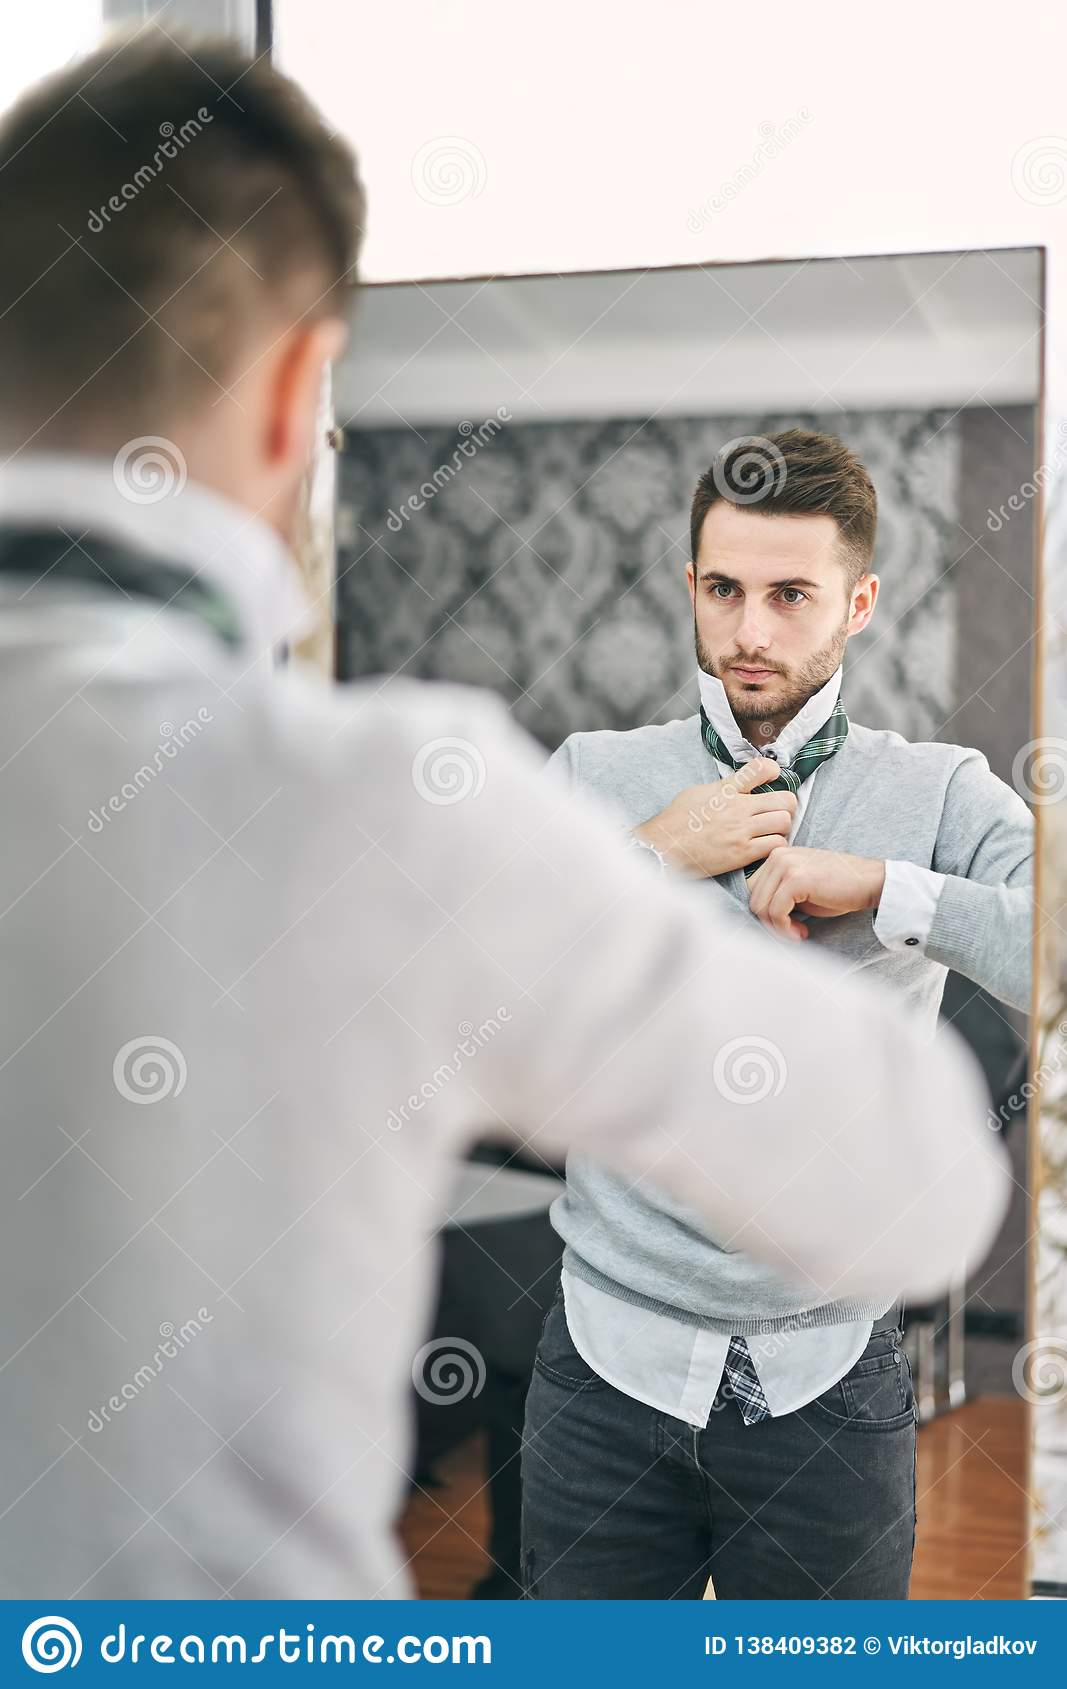 Handsome young man adjusting a tie in front of the mirror